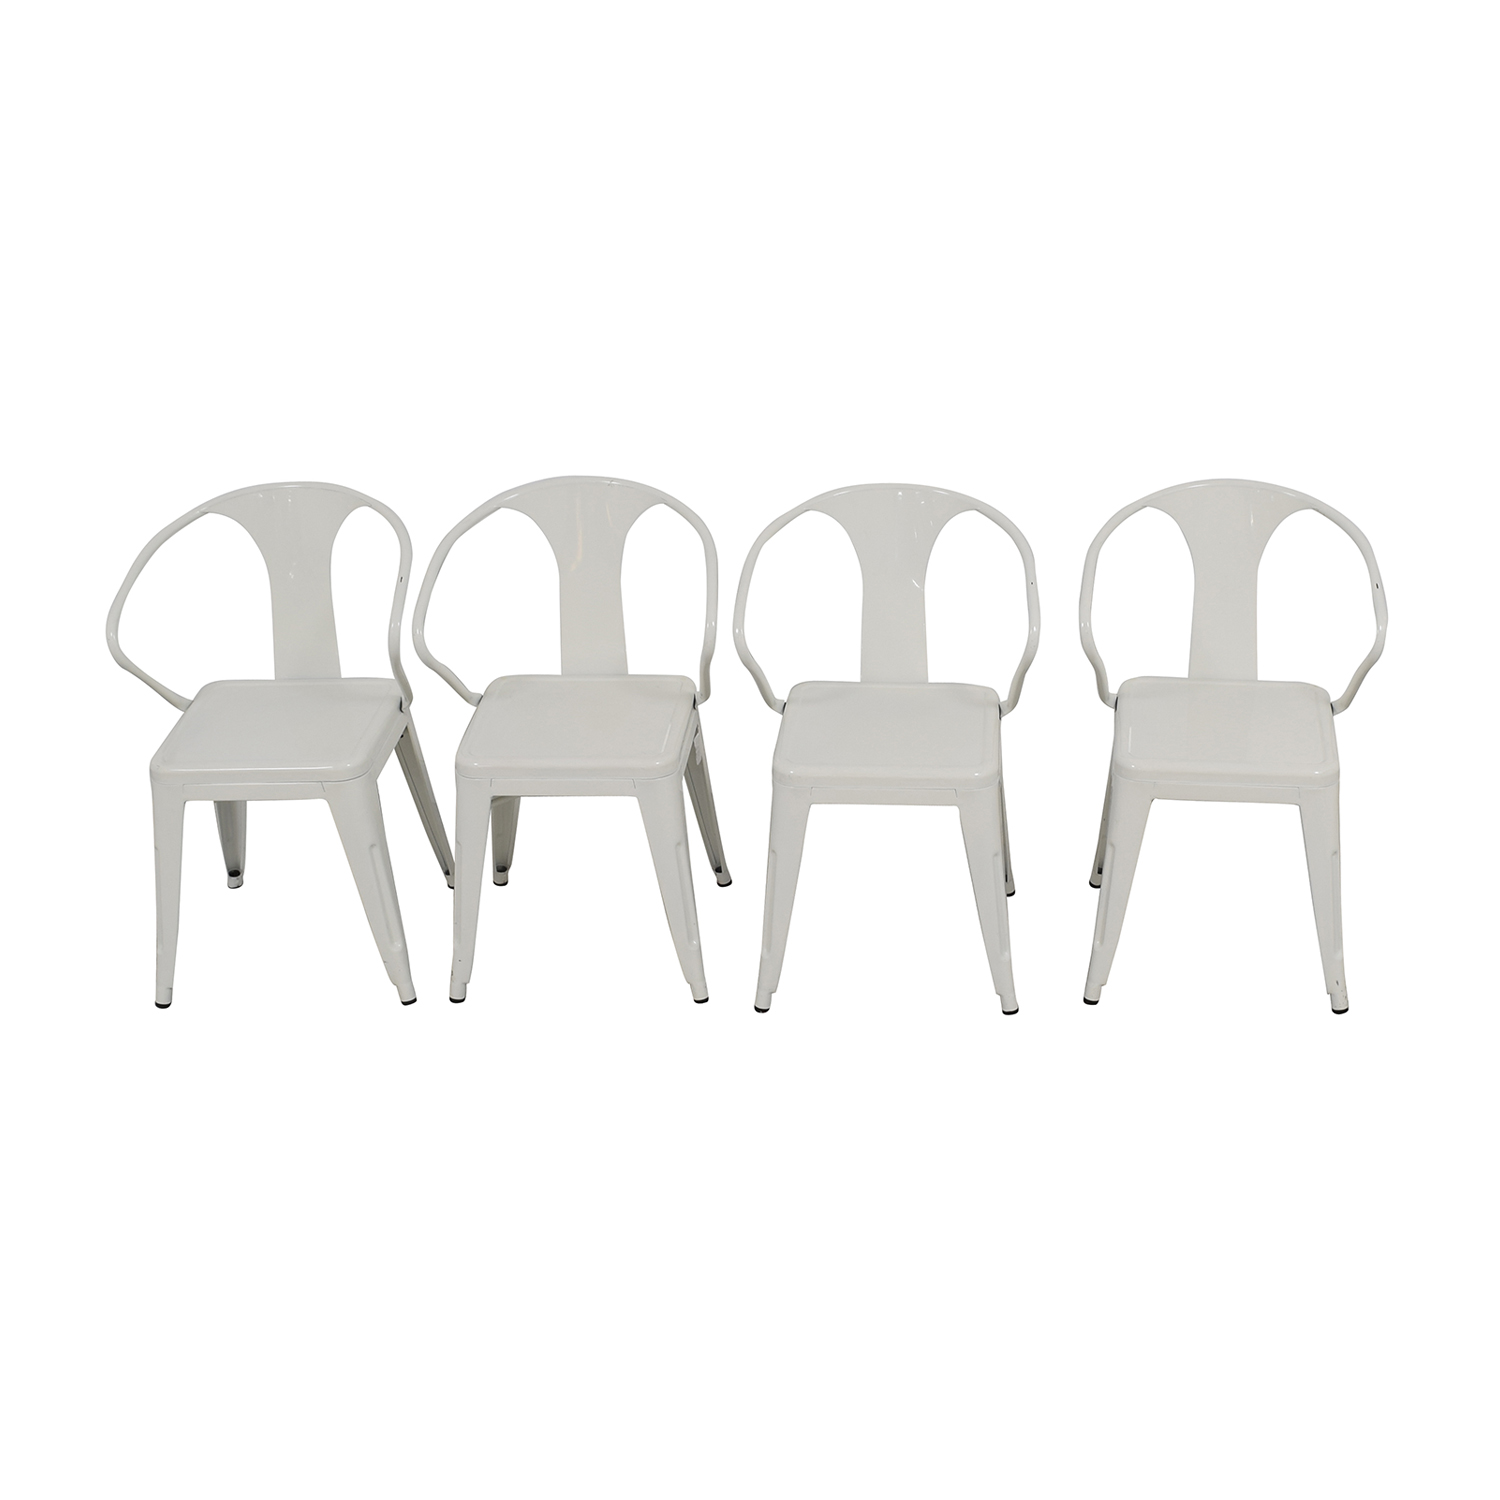 Overstock Overstock White European Chairs for sale